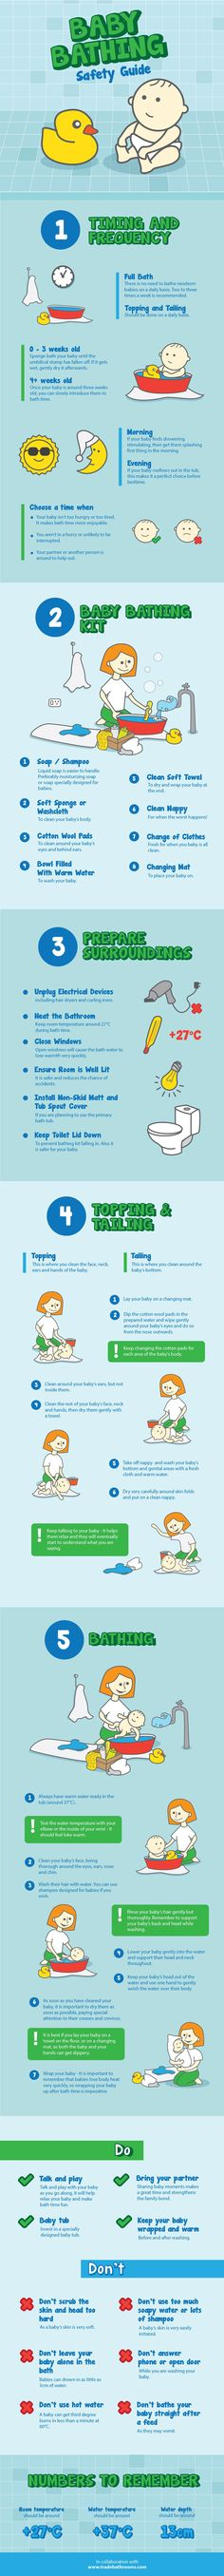 Supernanny has baby care tips Infographic: Baby Bathing Safety Guide This infographic is a fantastic resource for all parents on baby bath time. There are some important things to bear in mind to make sure your baby is safe at all times. Trade Bathrooms h Baby On The Way, Our Baby, Baby Baby, Baby Bath Time, Baby Time, 5 Weeks Pregnant, Pregnant Mom, Futur Parents, Baby Information